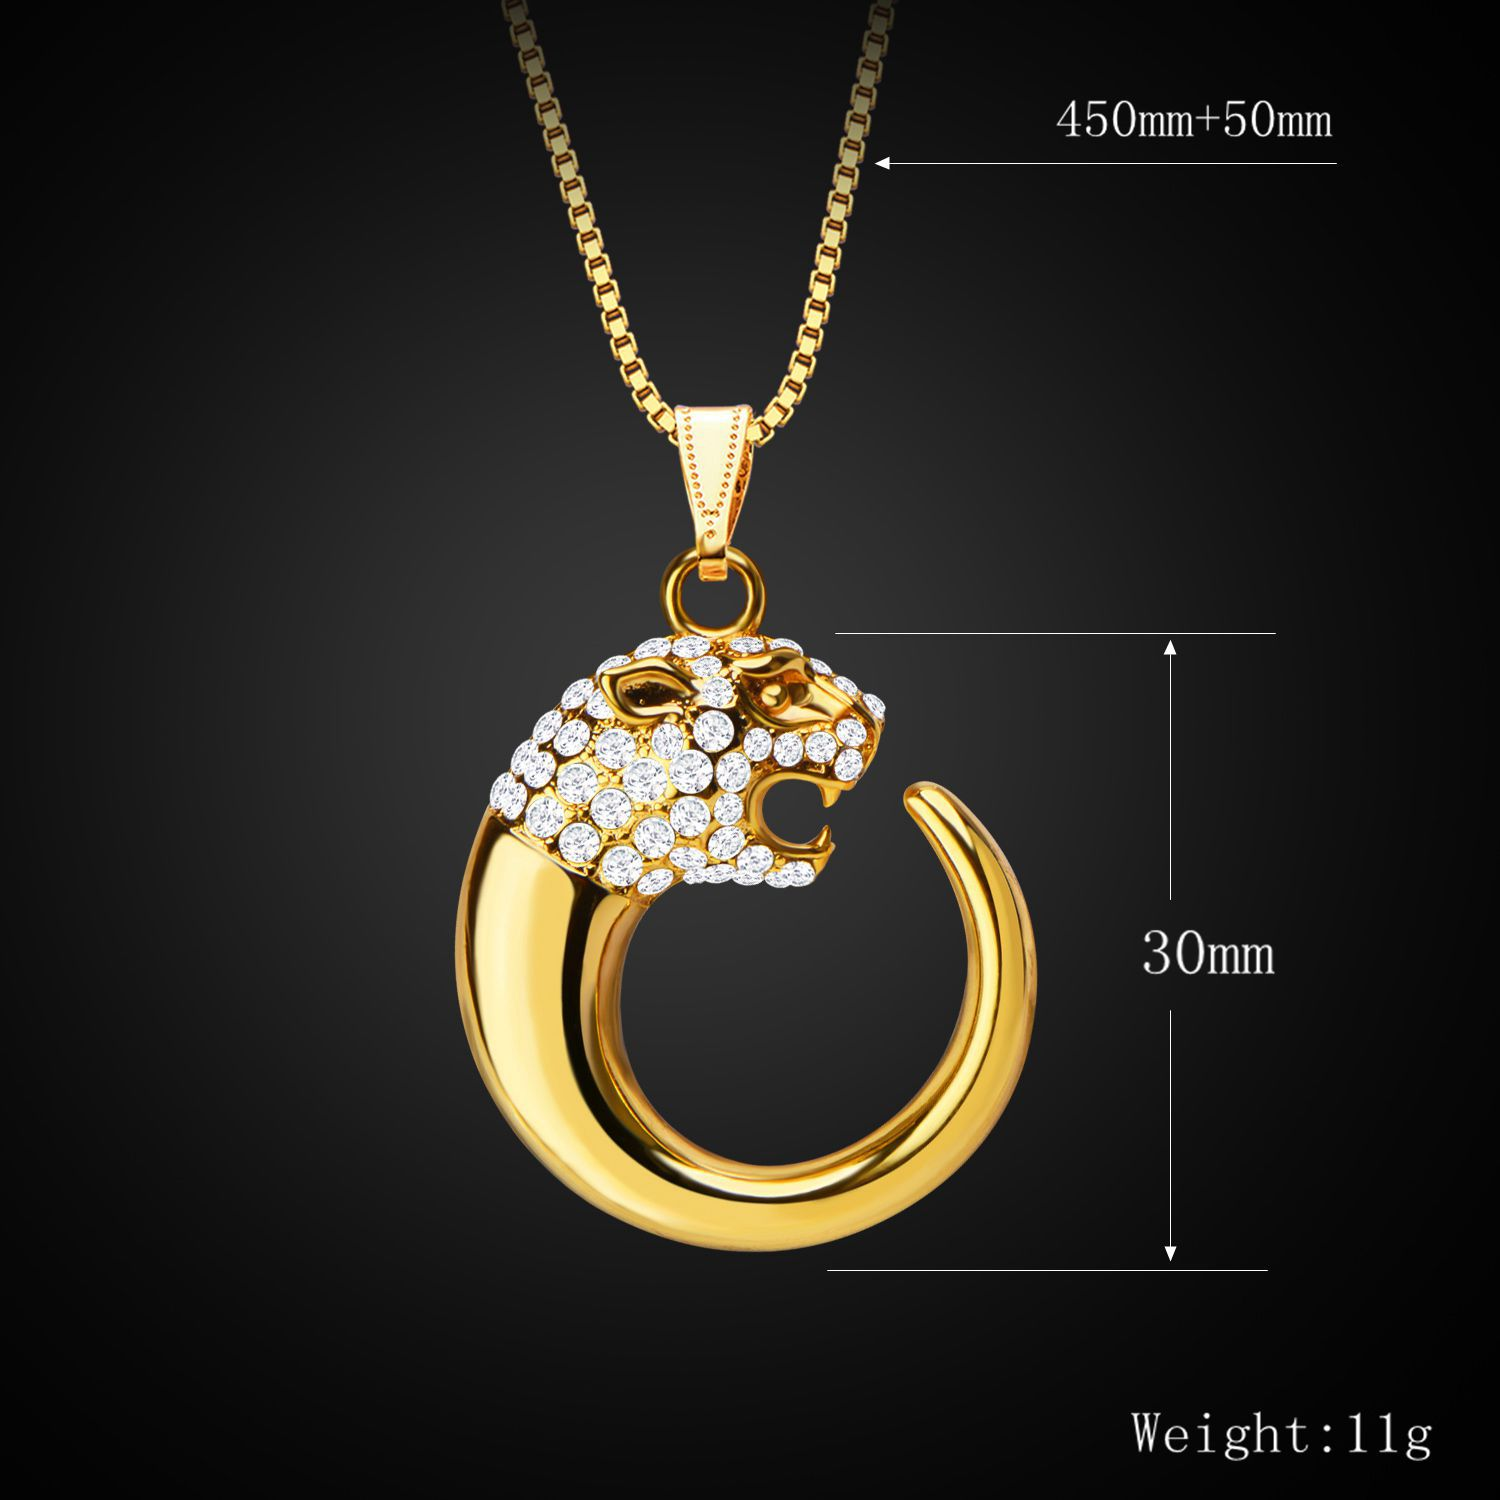 Trendy Jewelry Sets 18K Gold Plated Rhinestone Necklace Earring Unique Pendant Necklace and Earrings wholesale